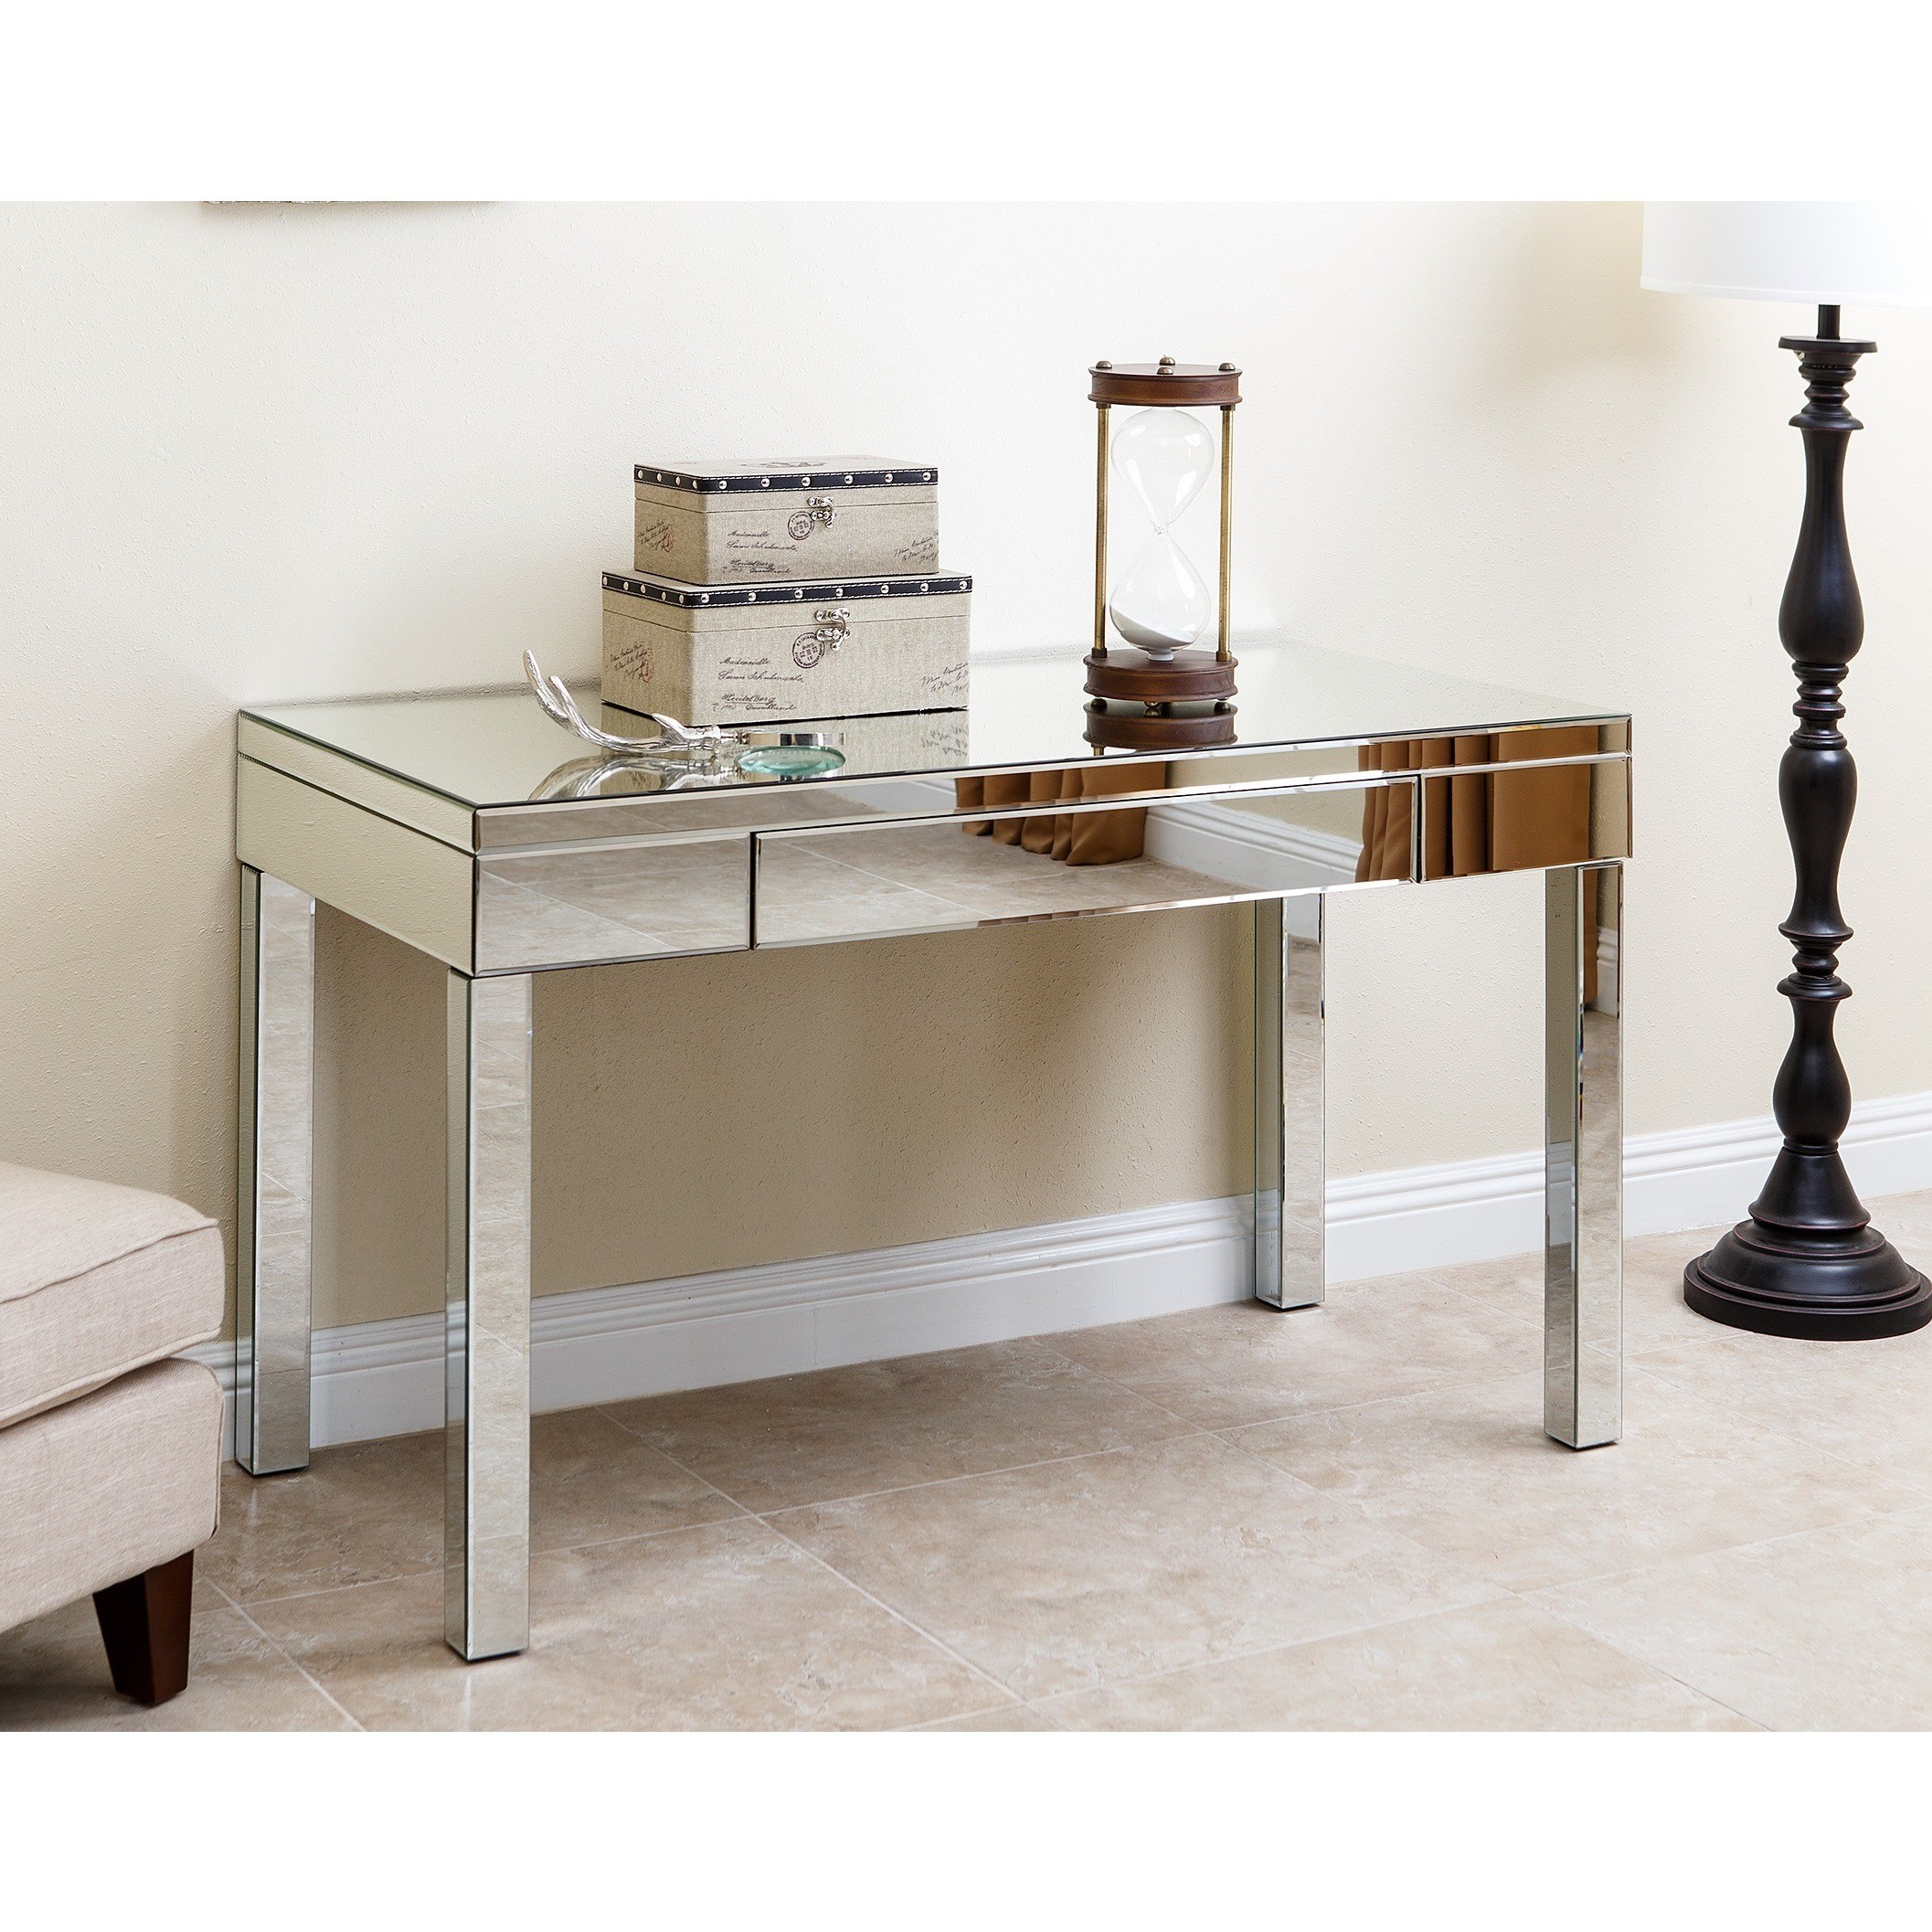 abbyson sylvia mirrored desk free shipping today living metal accent table white ginger jar lamps cement side outside end black and gold bedside handbag storage ikea glass top